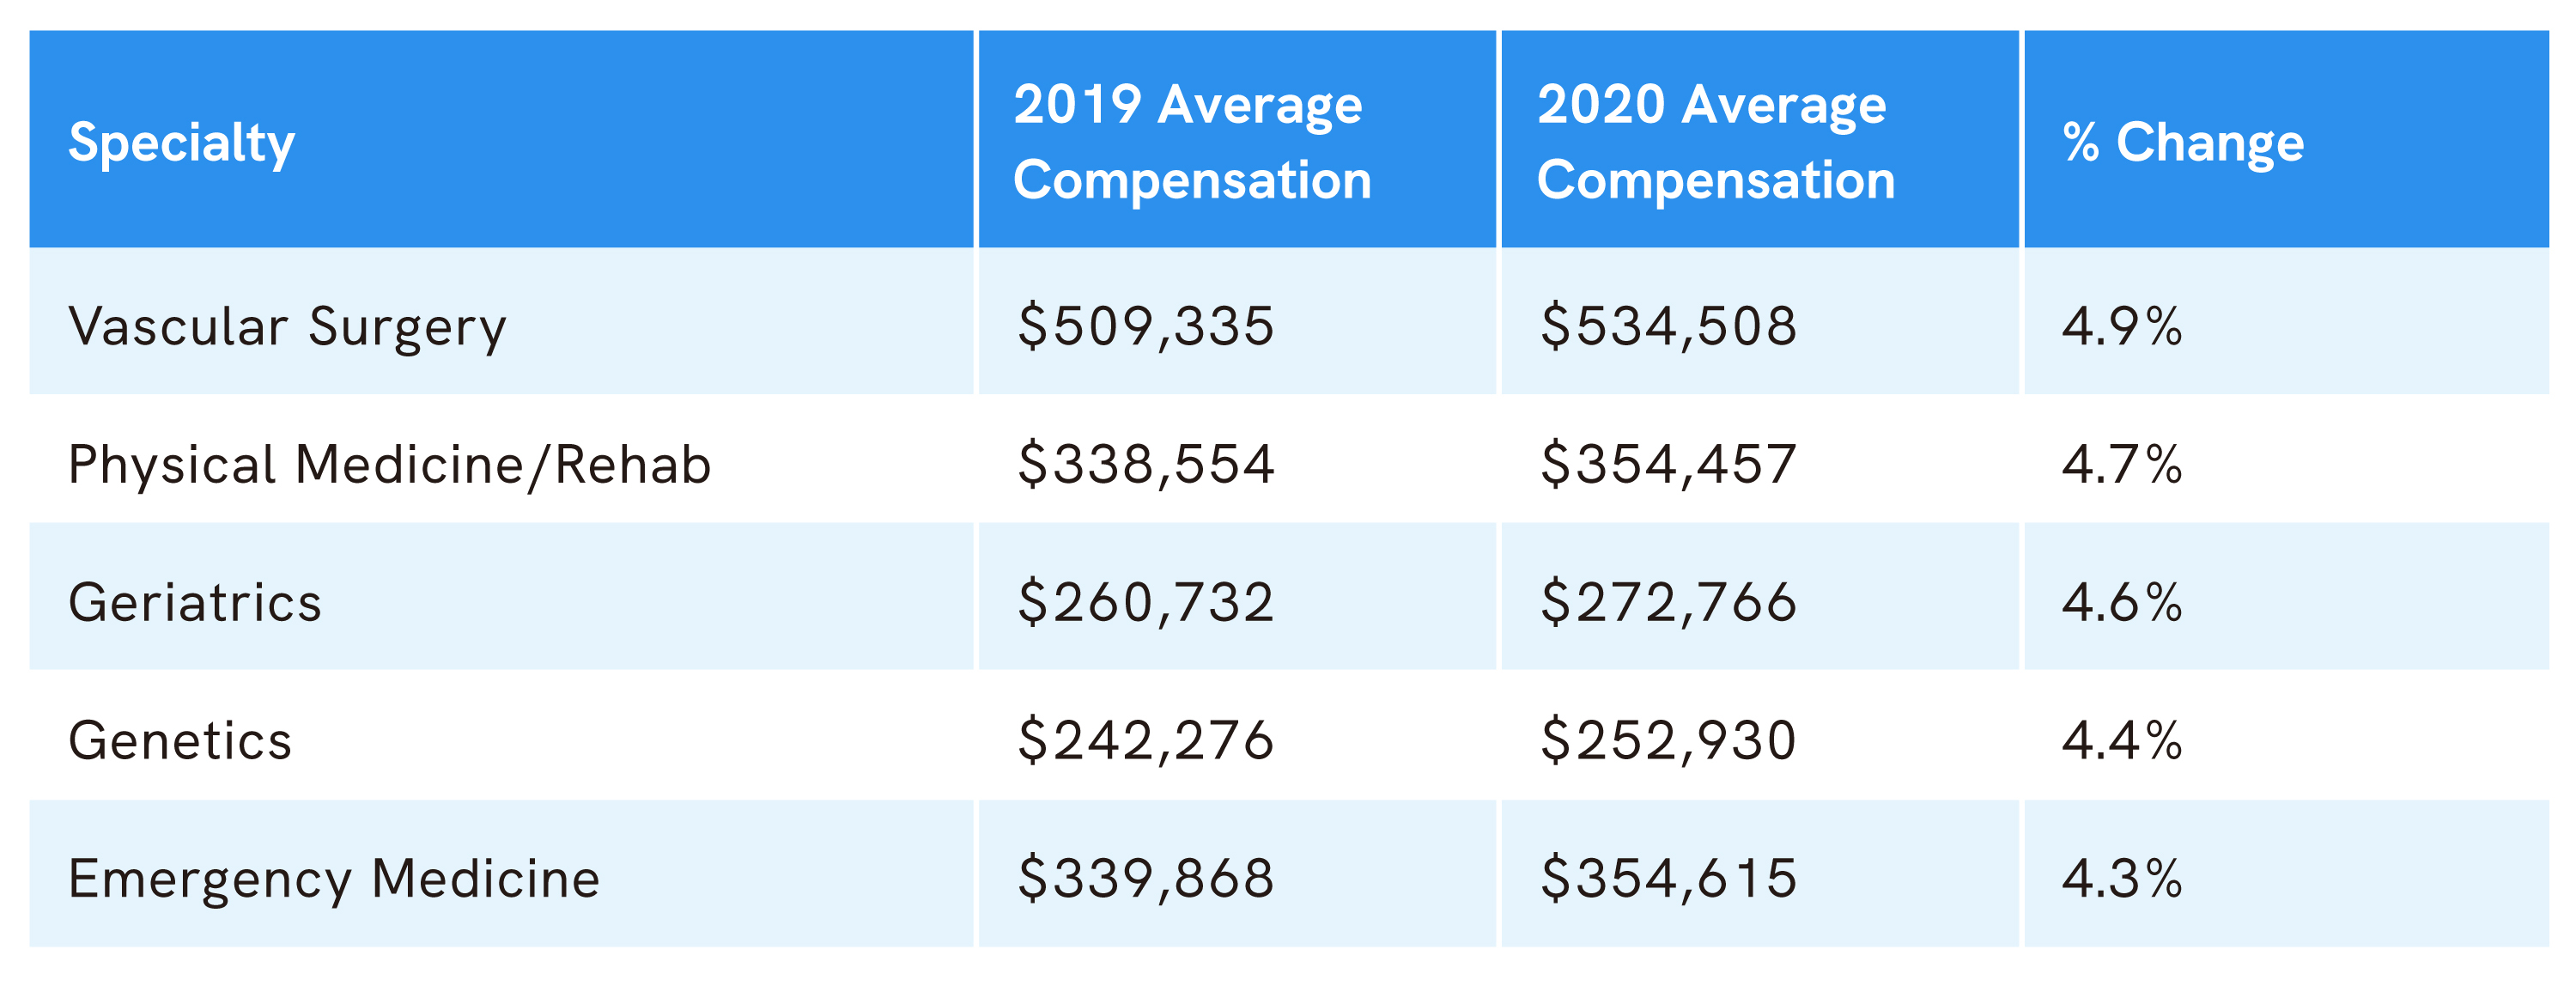 doximity-specialty-increase-compensation-report-2020